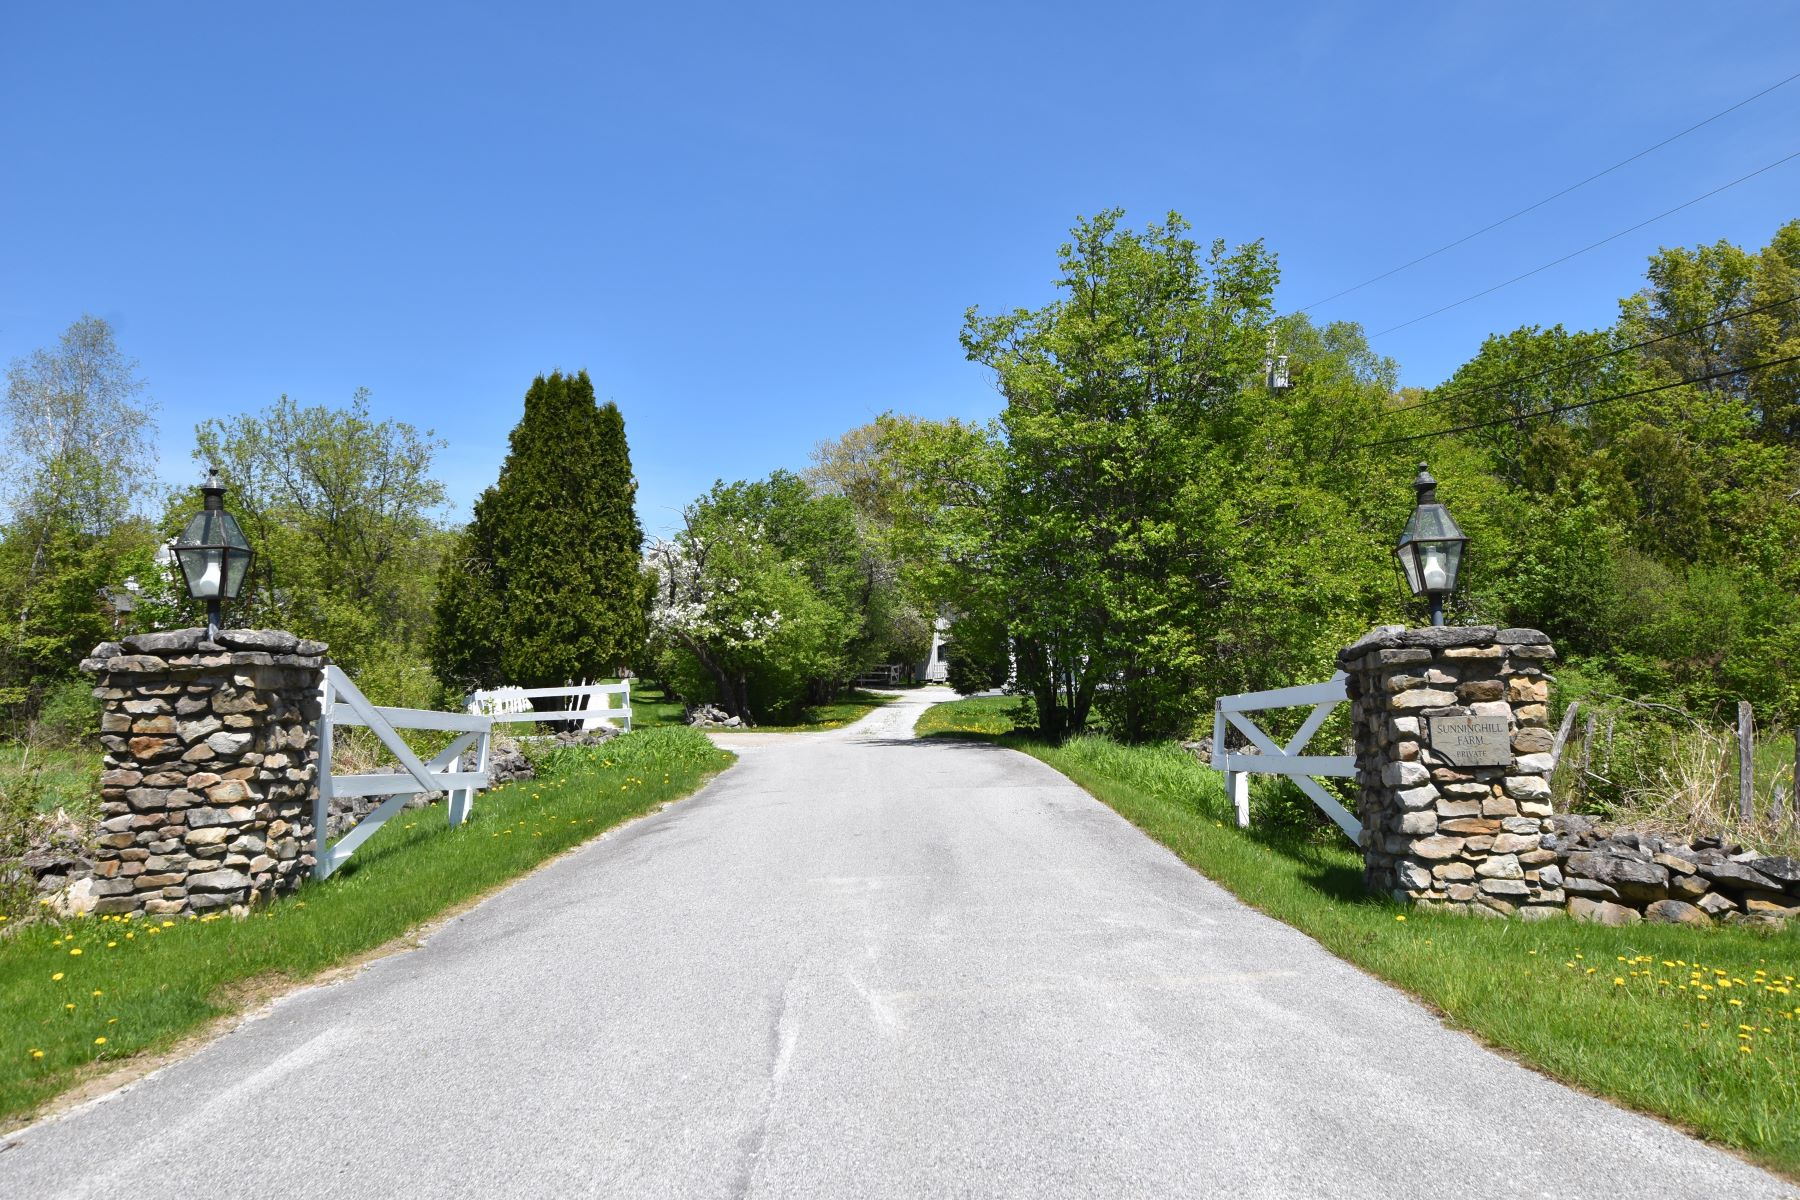 Single Family Home for Sale at 336 Tamarack Lane, Rutland Town 336 Tamarack Ln Rutland Town, Vermont 05701 United States